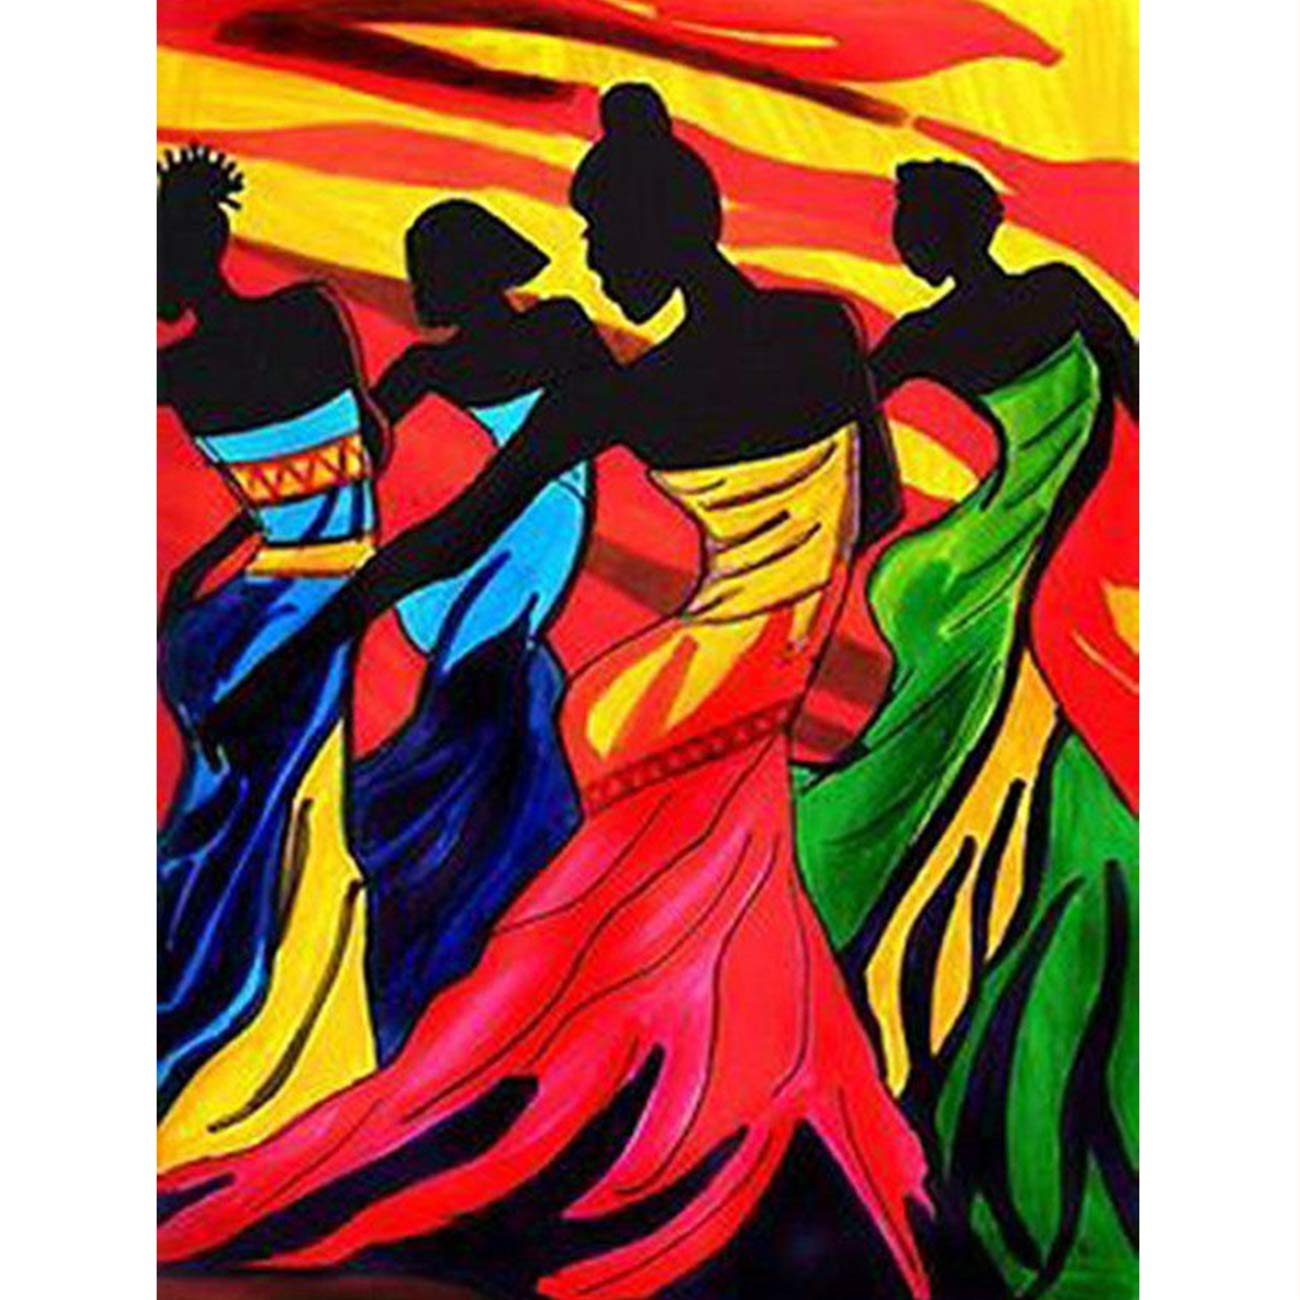 5D Diamond Painting African Women Dancing in The Sunset Full Drill by Number Kits, SKRYUIE DIY Rhinestone Pasted Paint with Diamond Set Arts Craft Decorations (12x16inch)